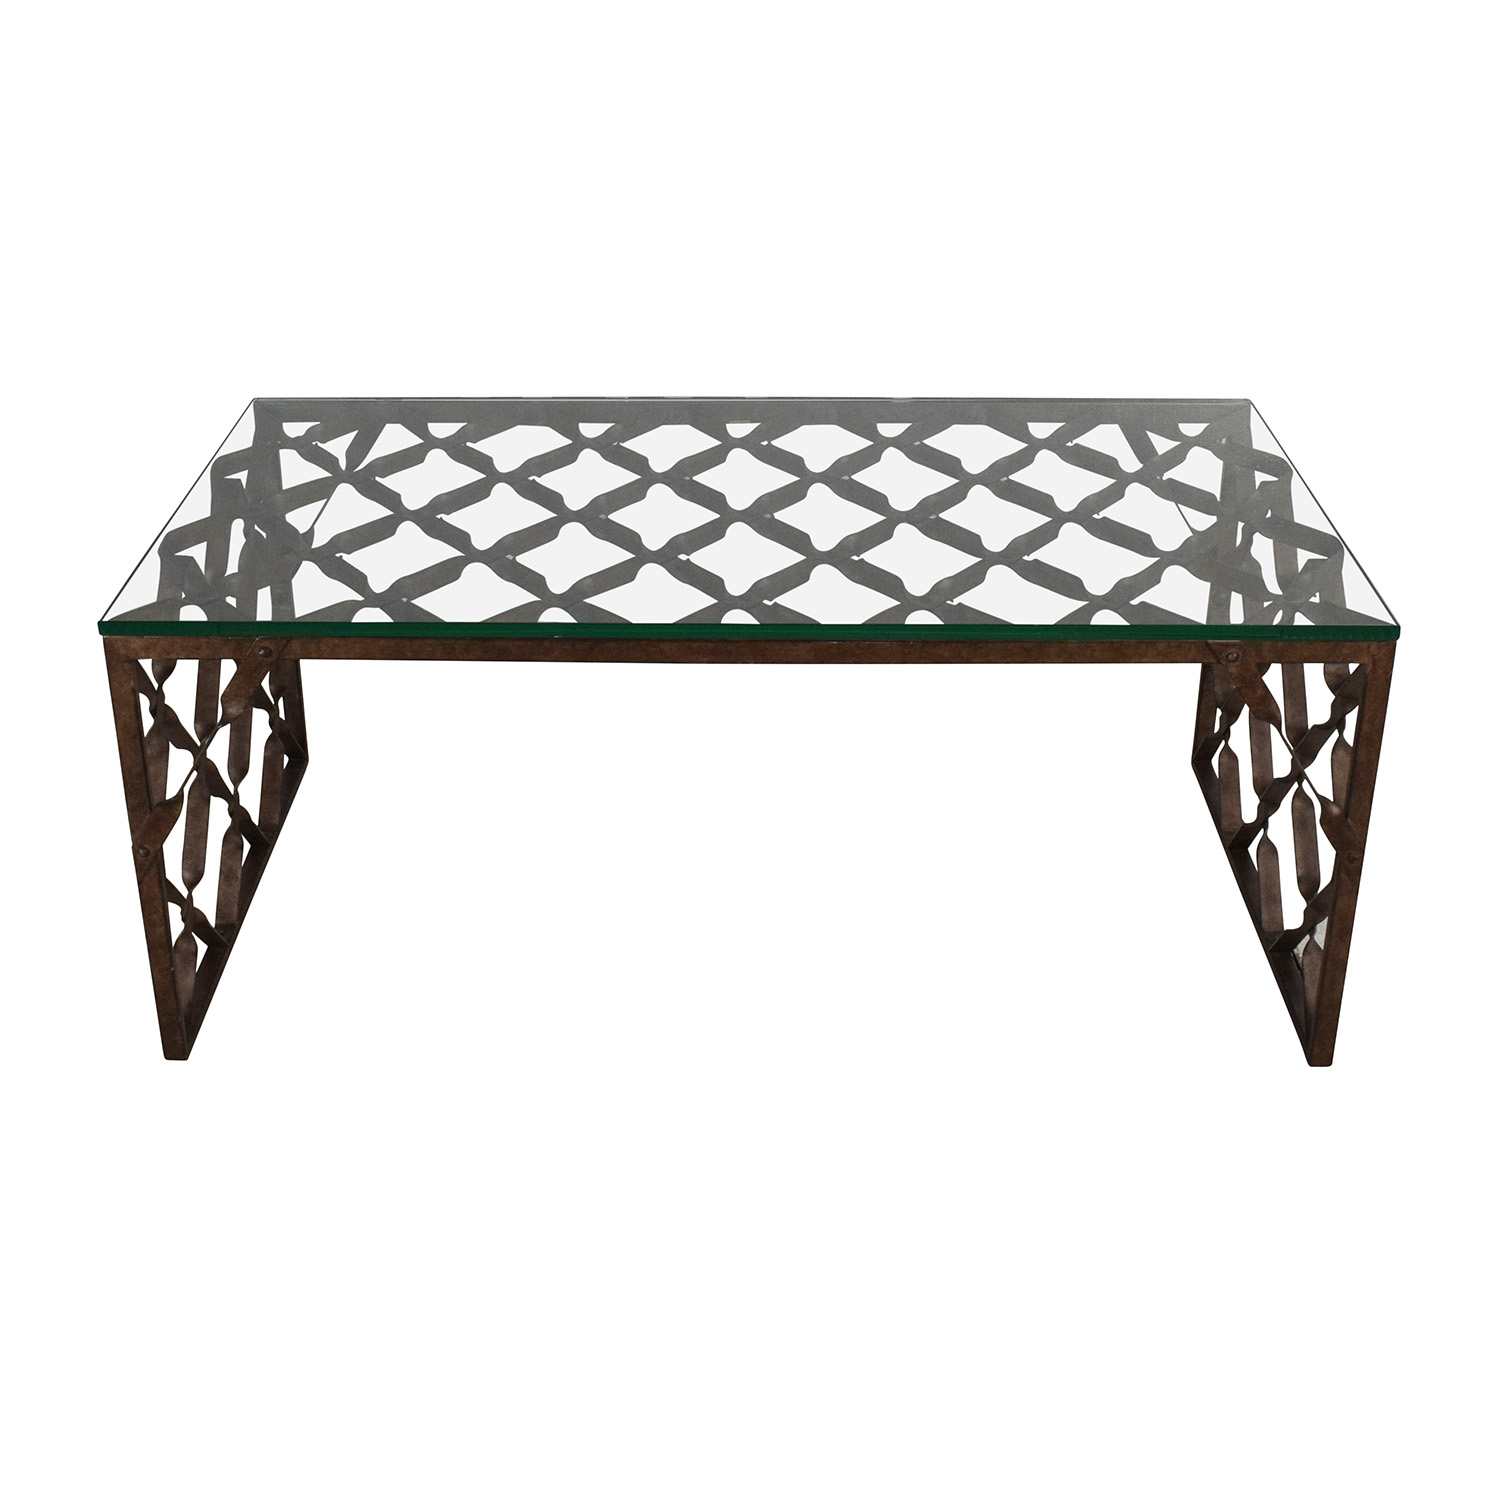 Crate and Barrel Crate & Barrel Glass Top Metalwork Coffee Table coupon